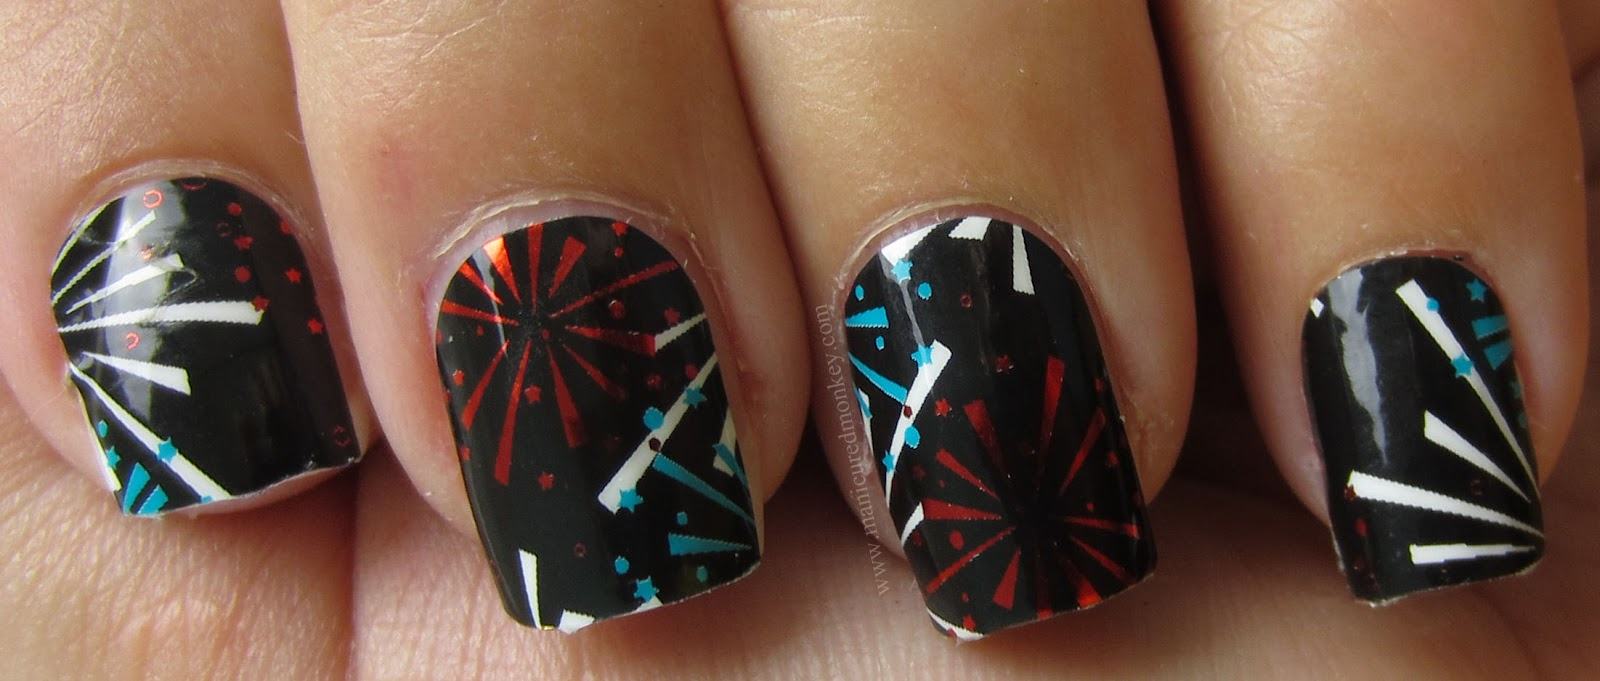 Manicured Guide: Jamberry Nails: Tutorial and Review